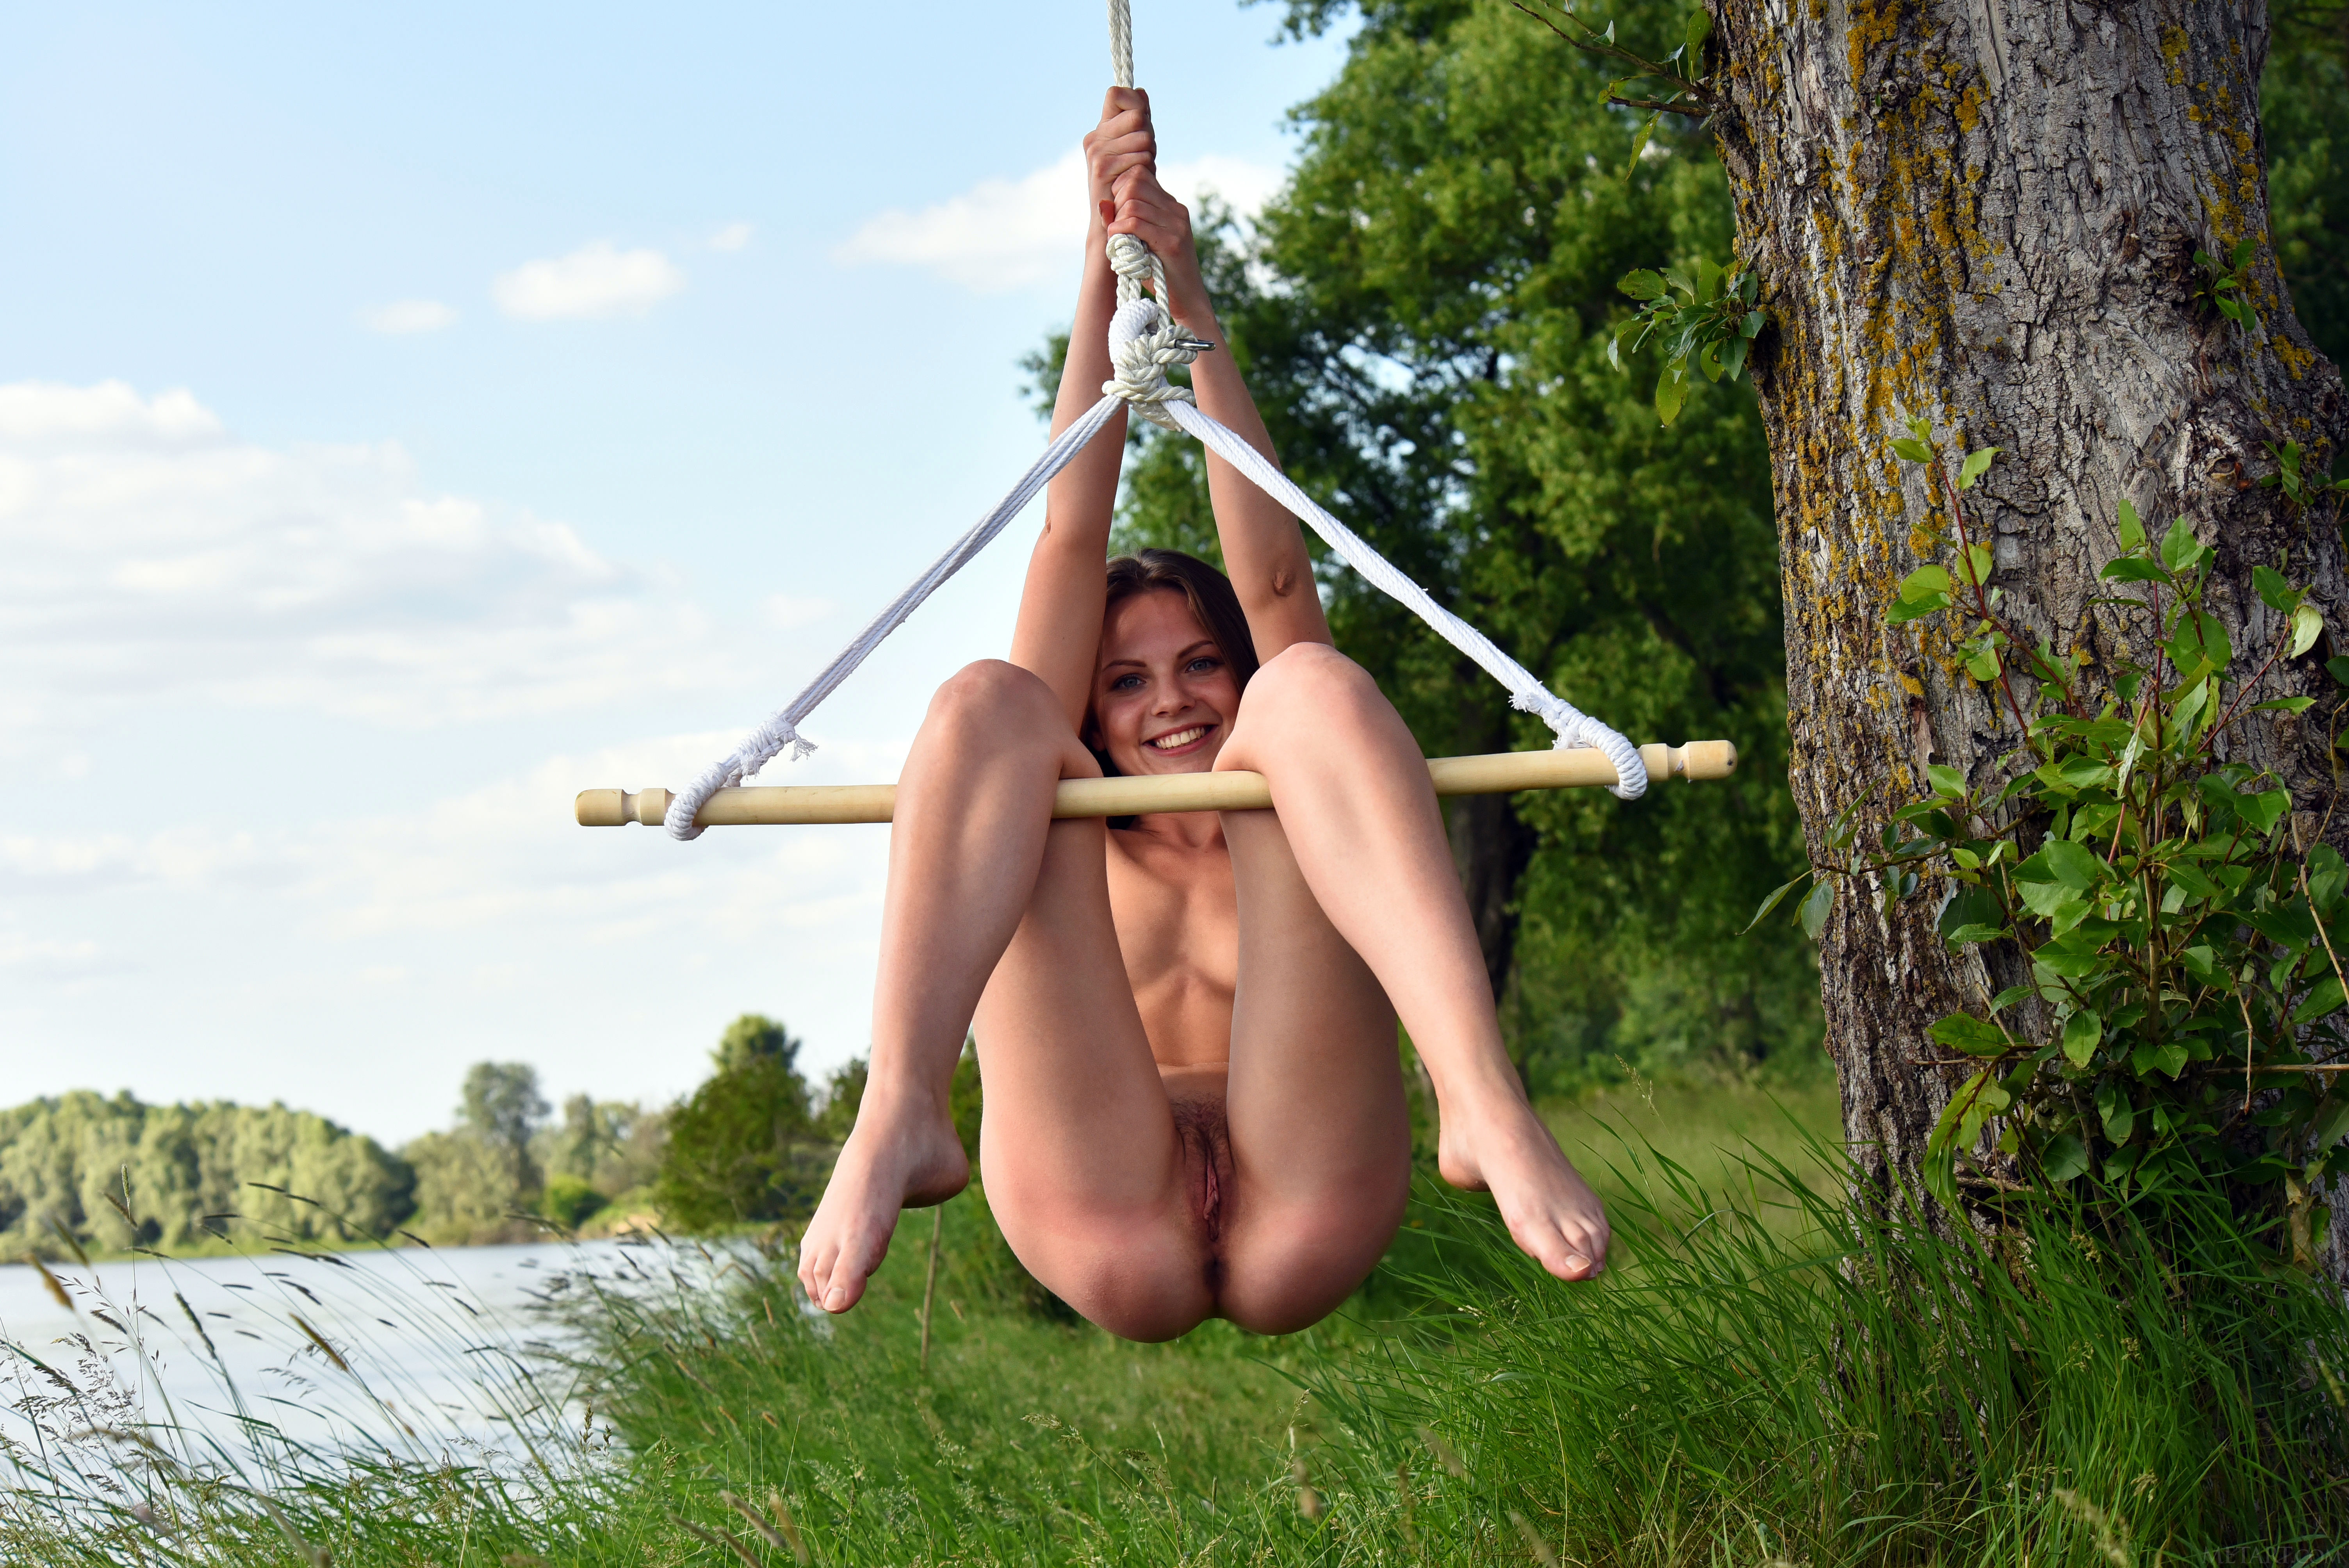 Hairy pussy on the swing